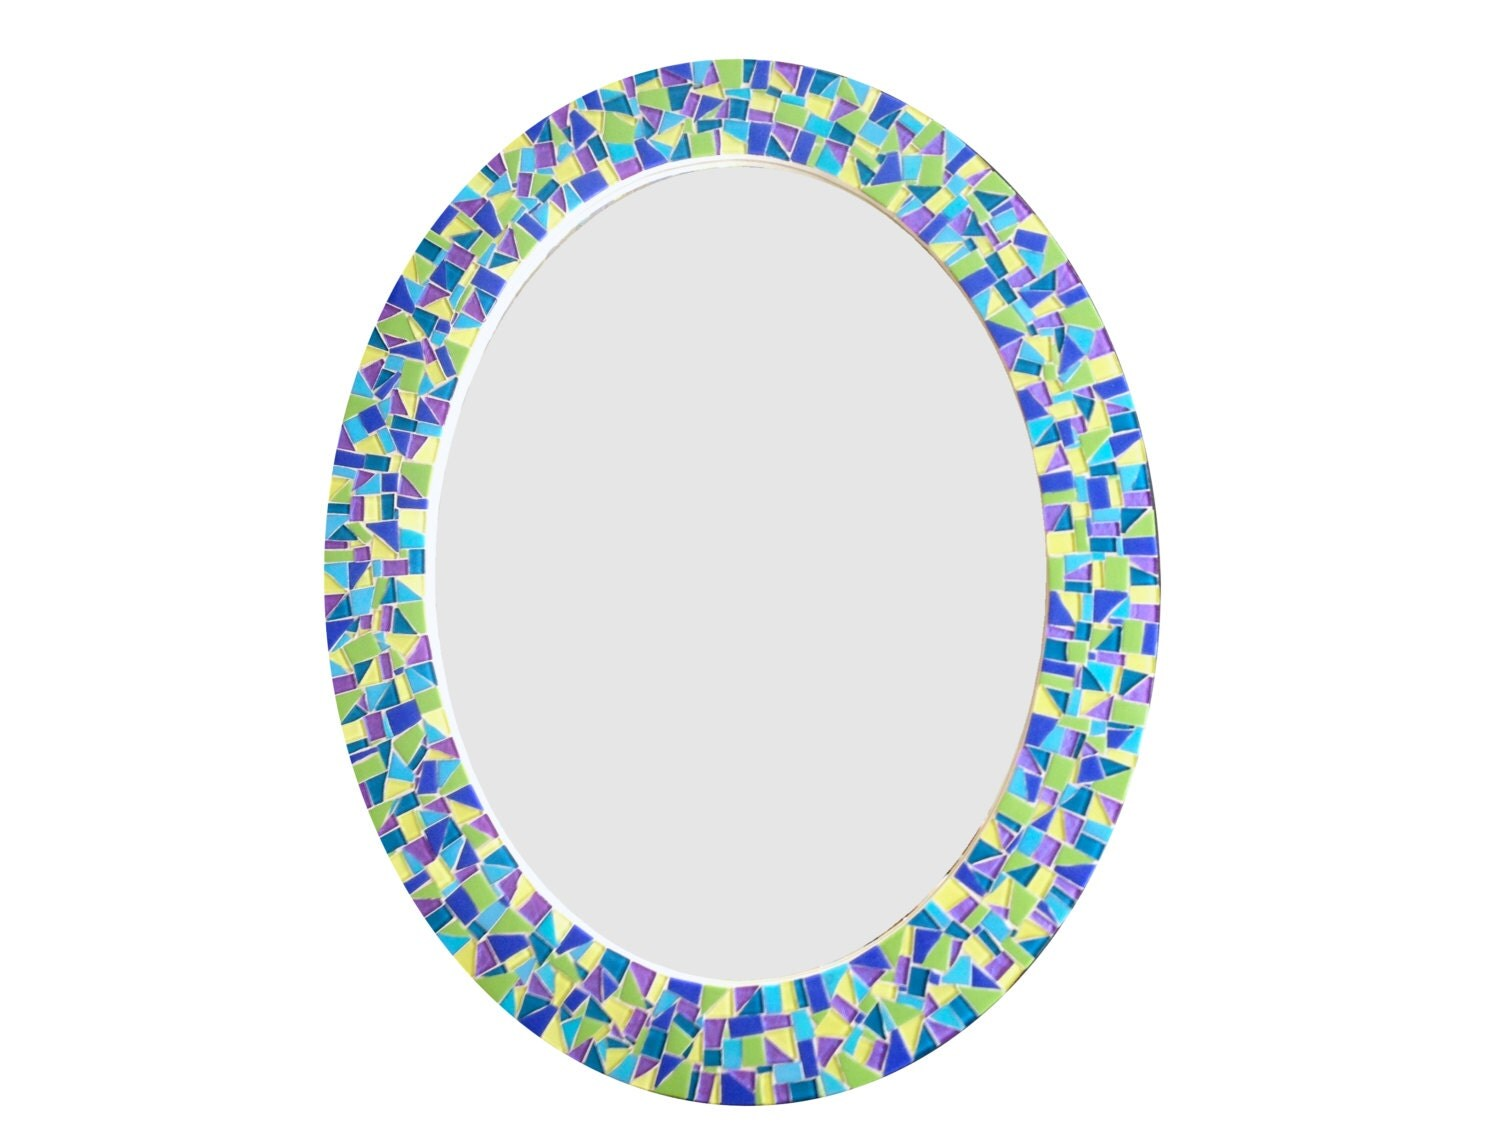 Colorful oval mirror decorative mosaic wall mirror in for Fancy oval mirror